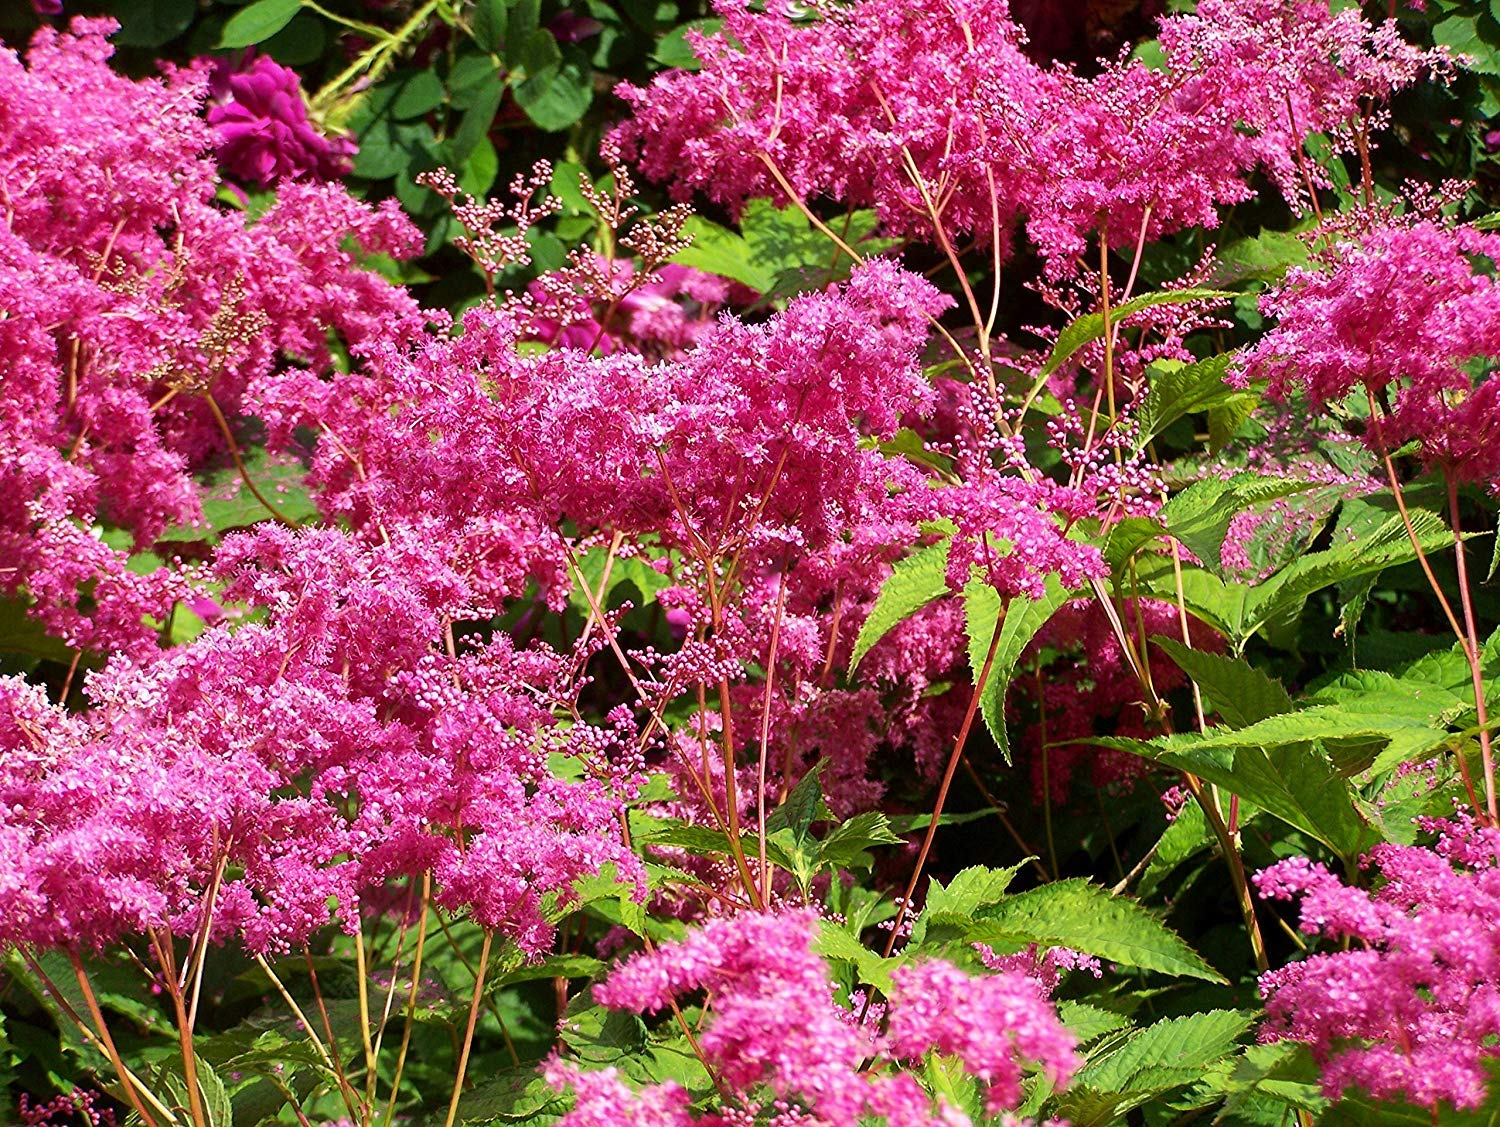 Shoppy Star: Filipendula Purpurea, (2roots) Elegant Foliage for Your Garden. Now Shipping